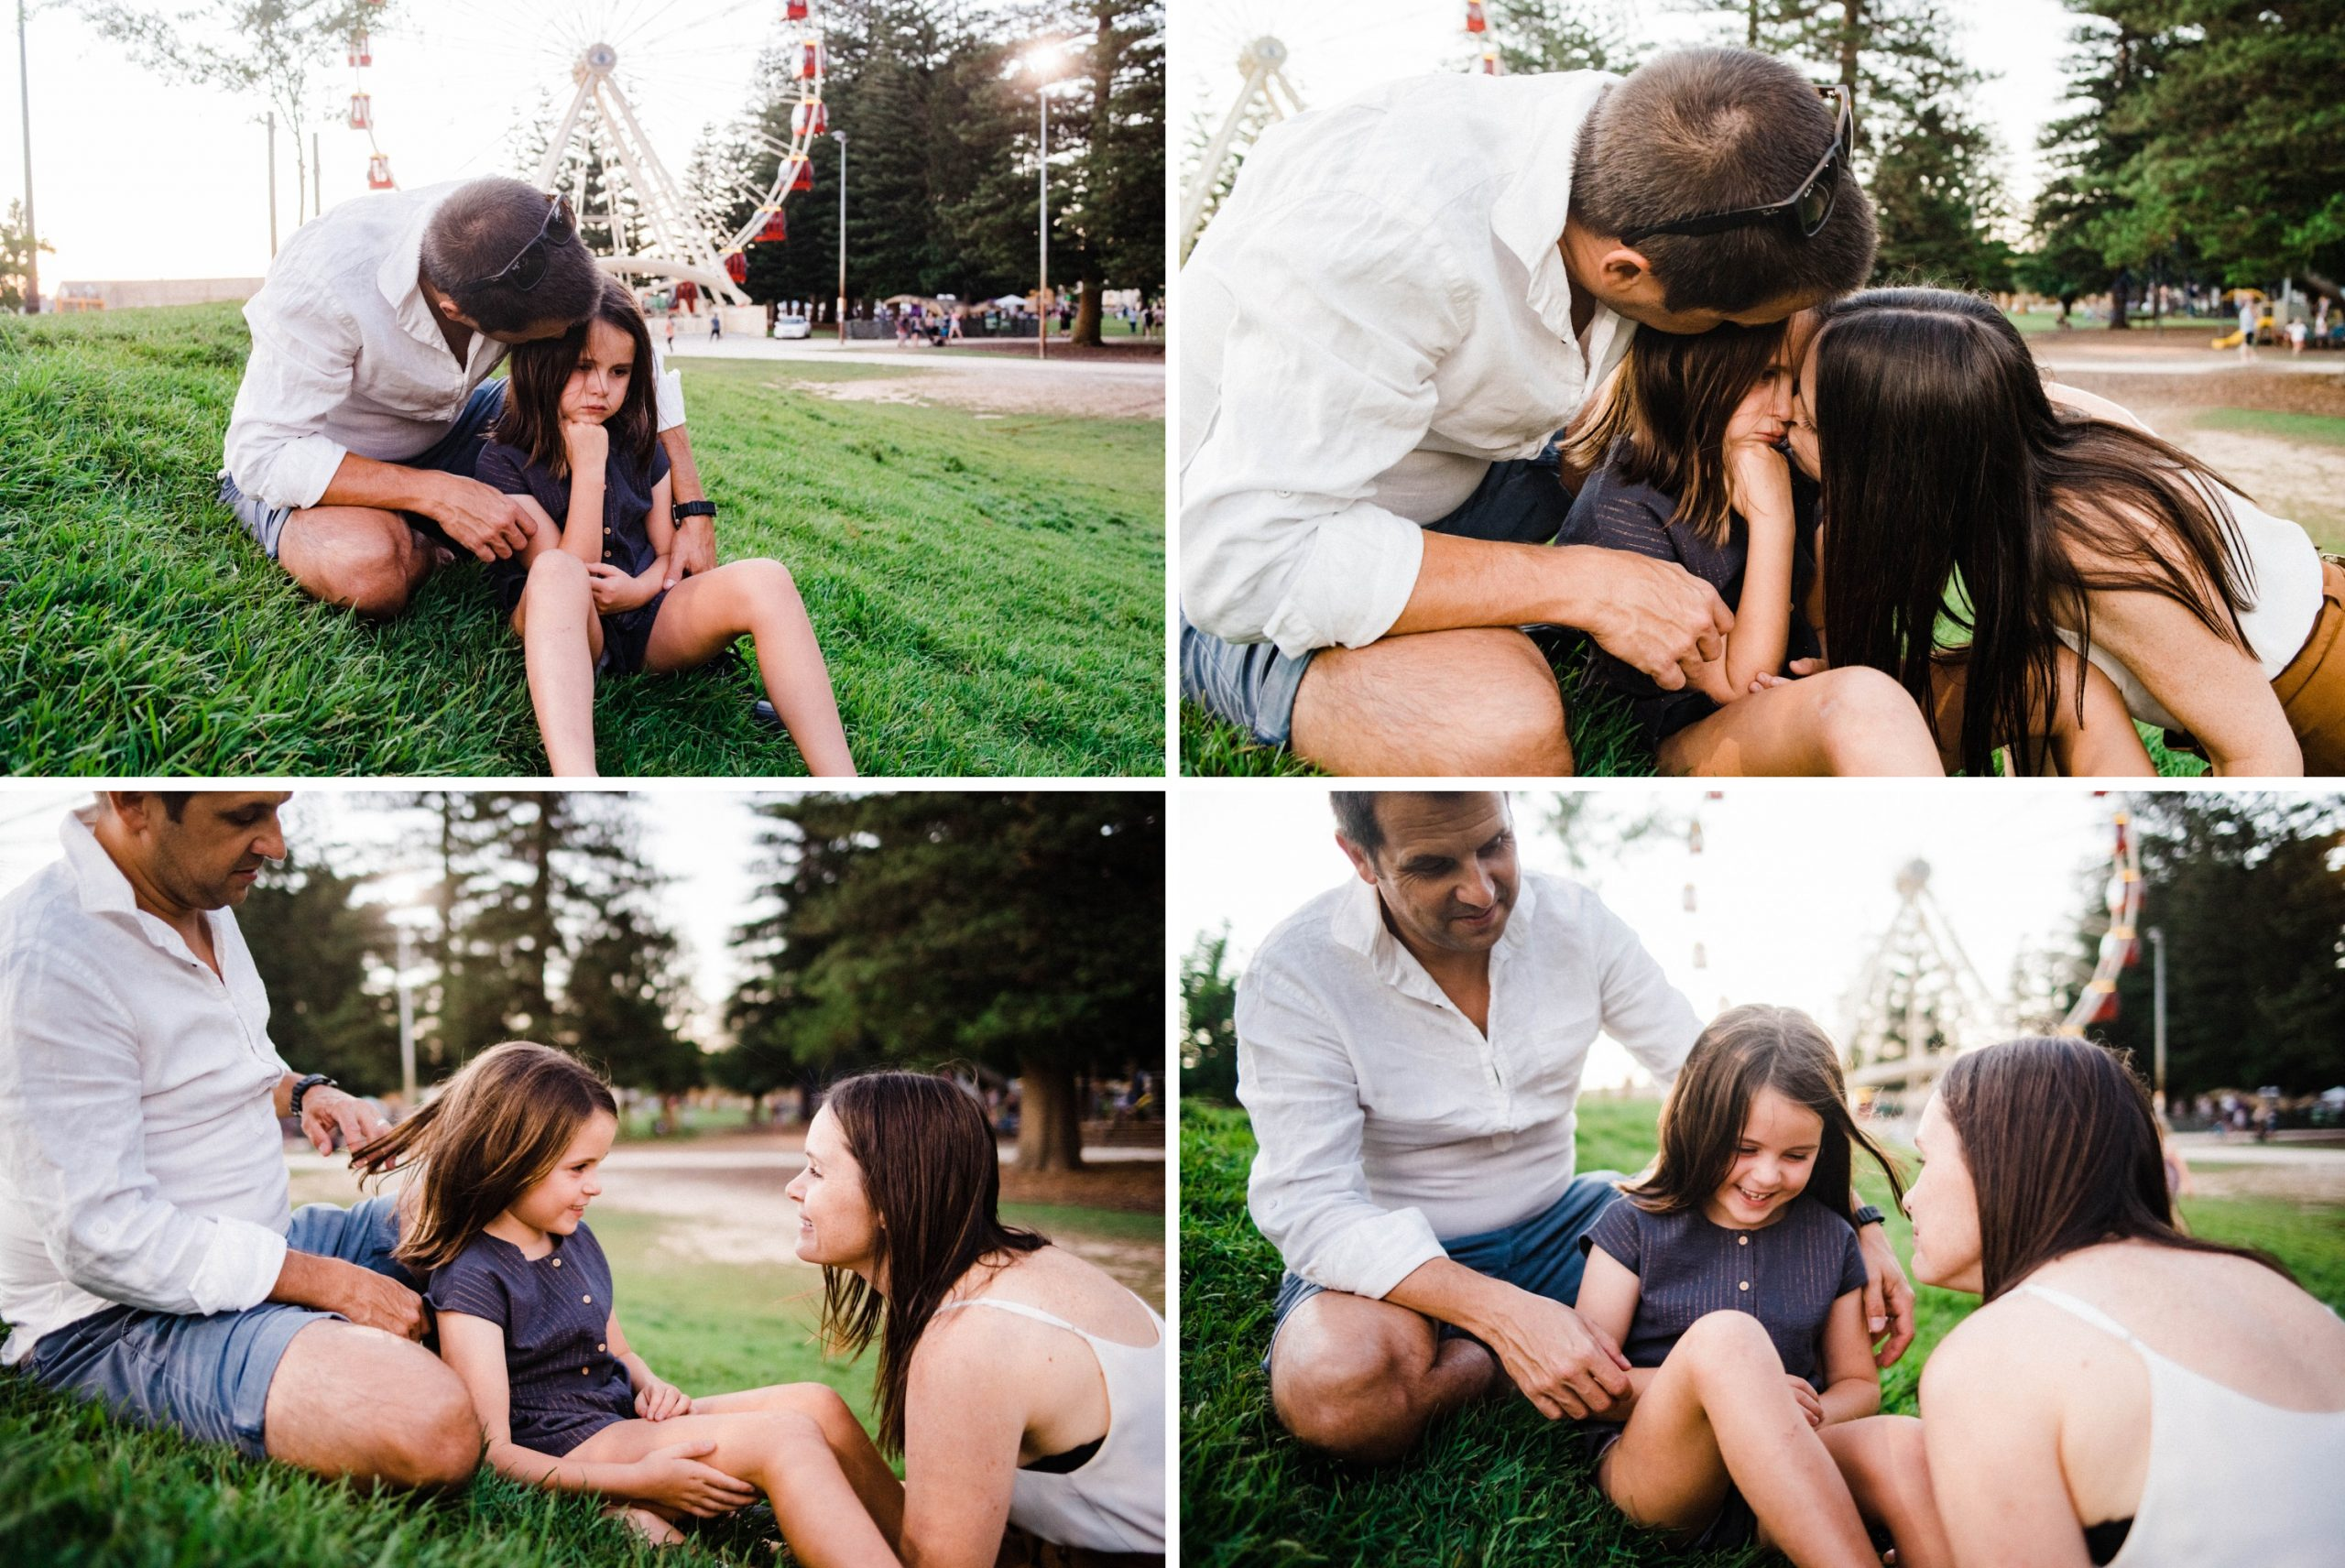 Four photos, telling the story of a girl crying and being comforted by her parents - she goes from looking sad to laughing at her Mum and Dad over the course of the photos.